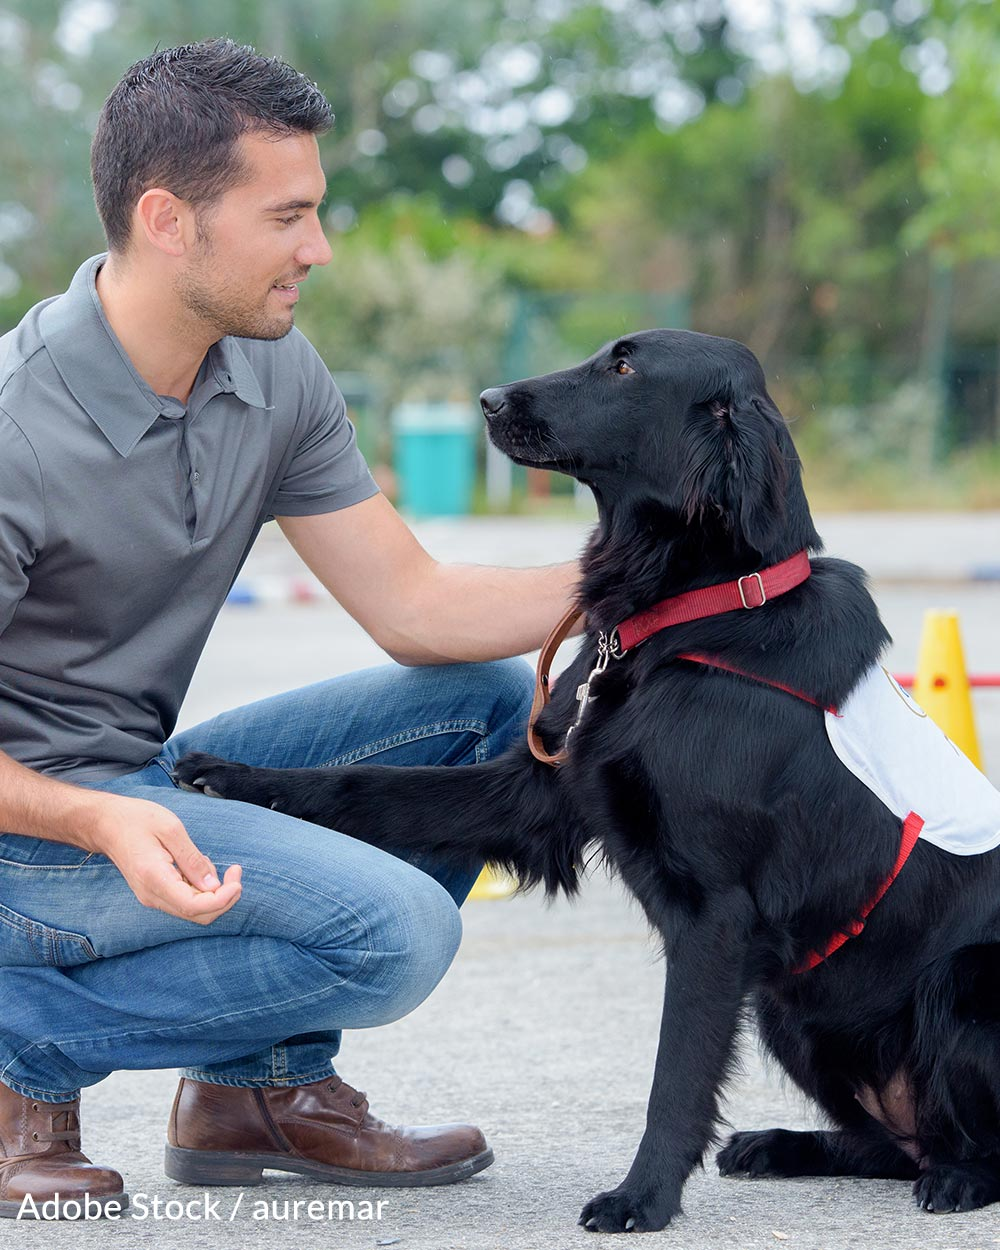 August 4 is Assistance Dog Day.